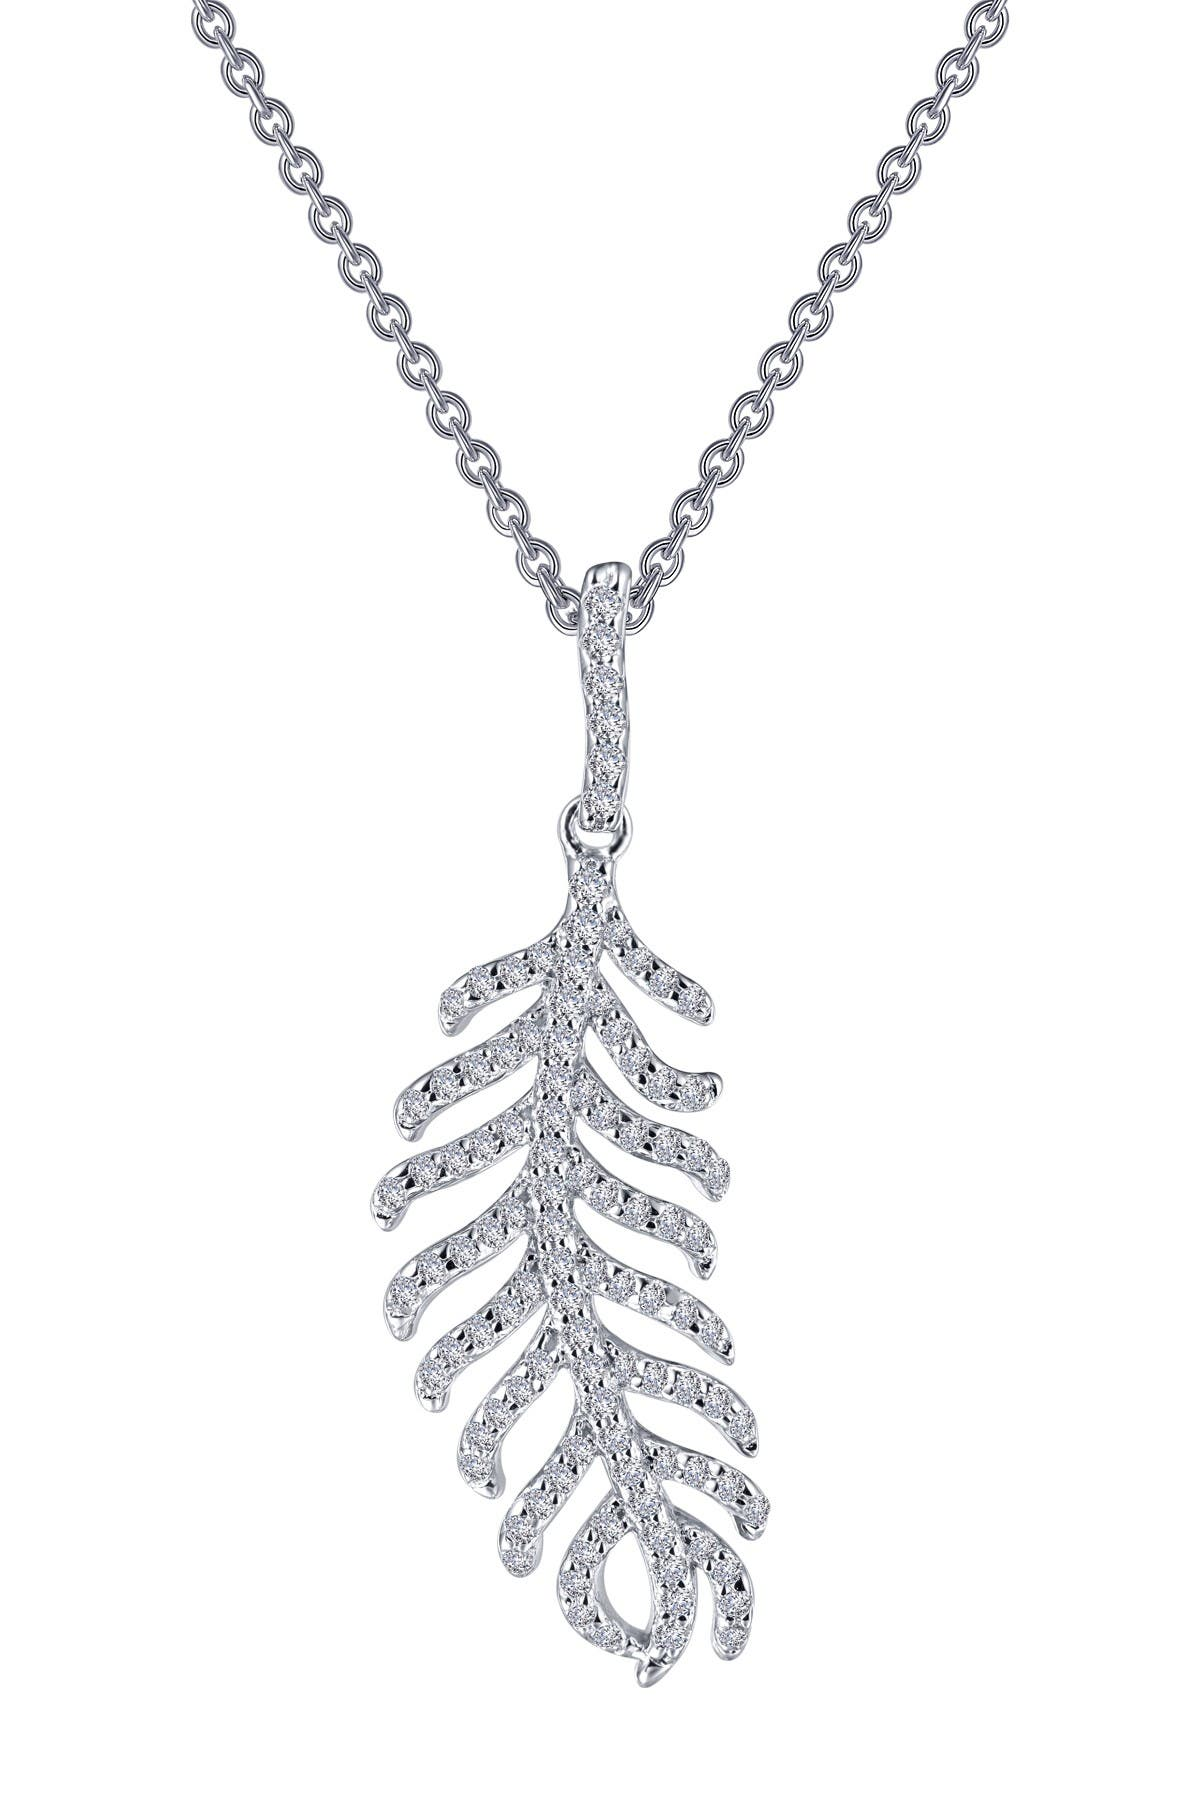 Image of LaFonn Platinum Sterling Silver Pave Feather Necklace